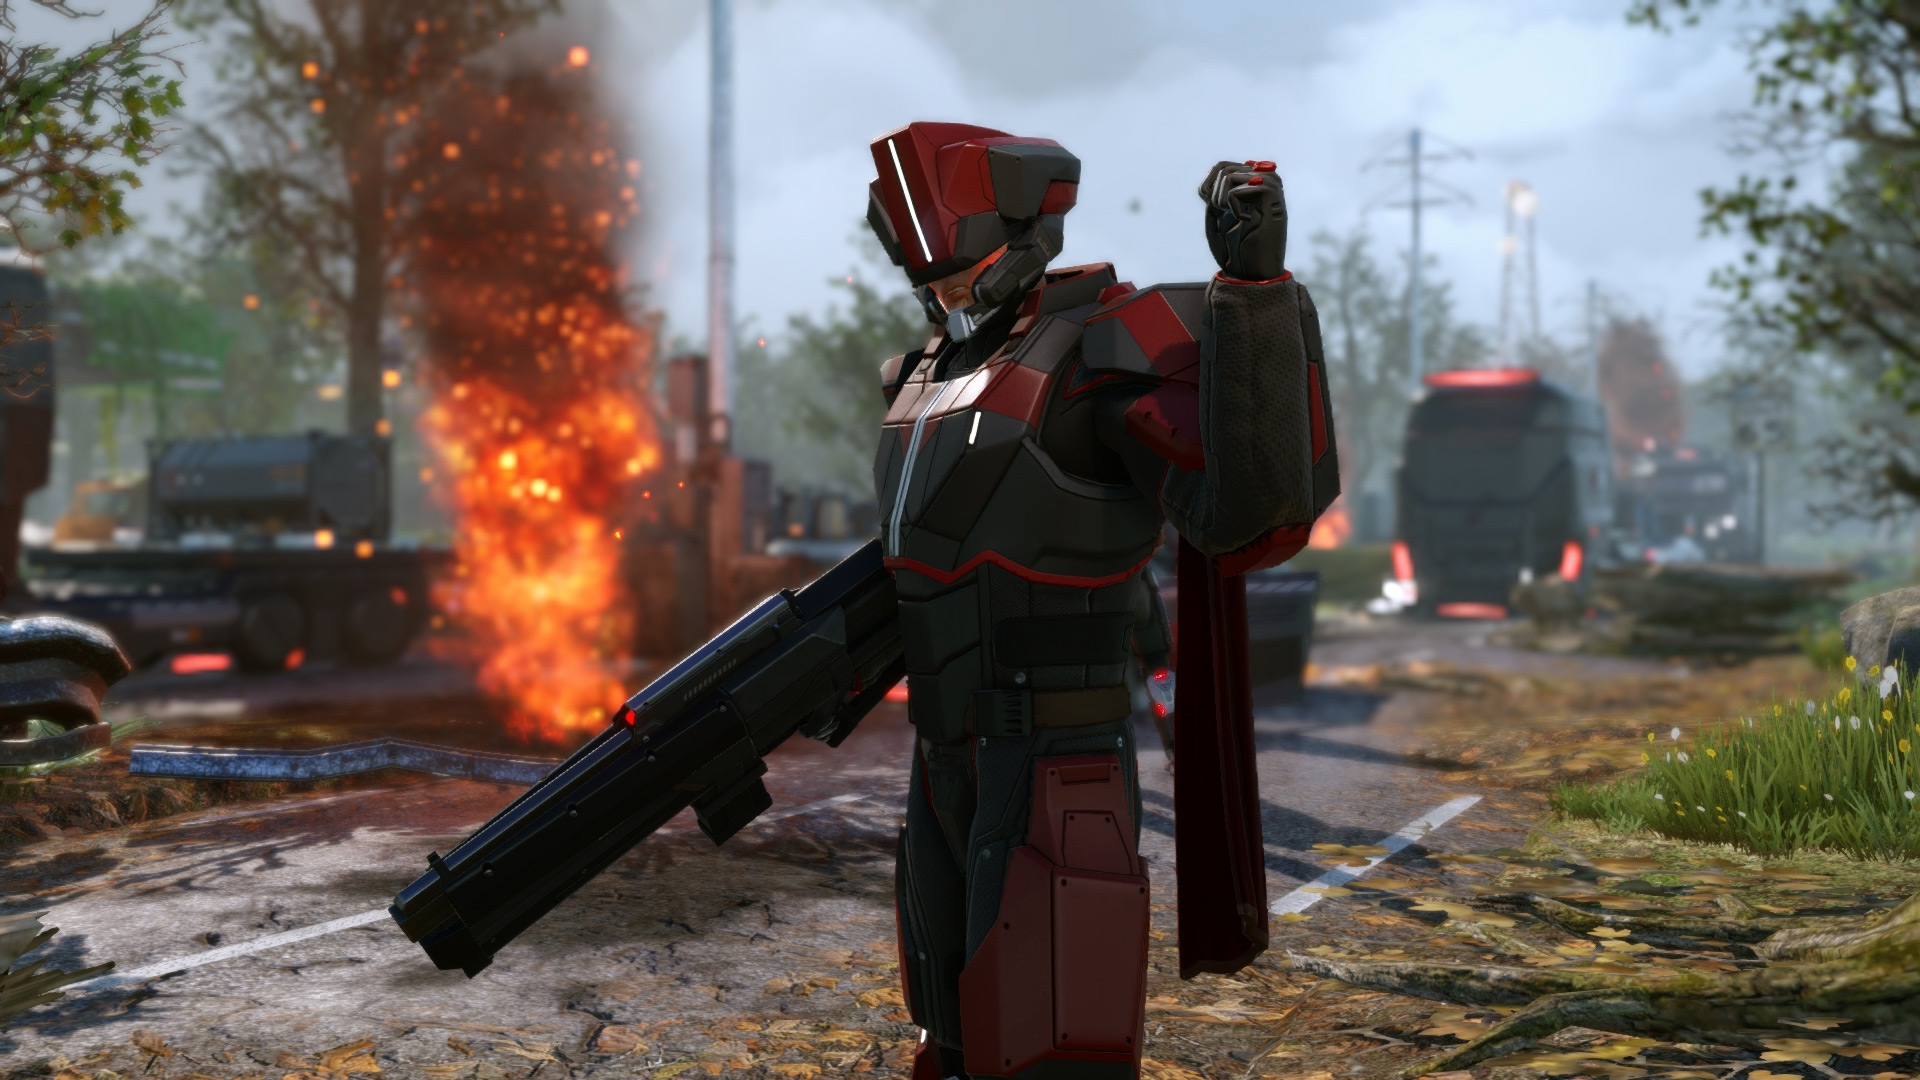 PT - The Aesthetic of Domination: The look of ADVENT and the Archon in XCOM